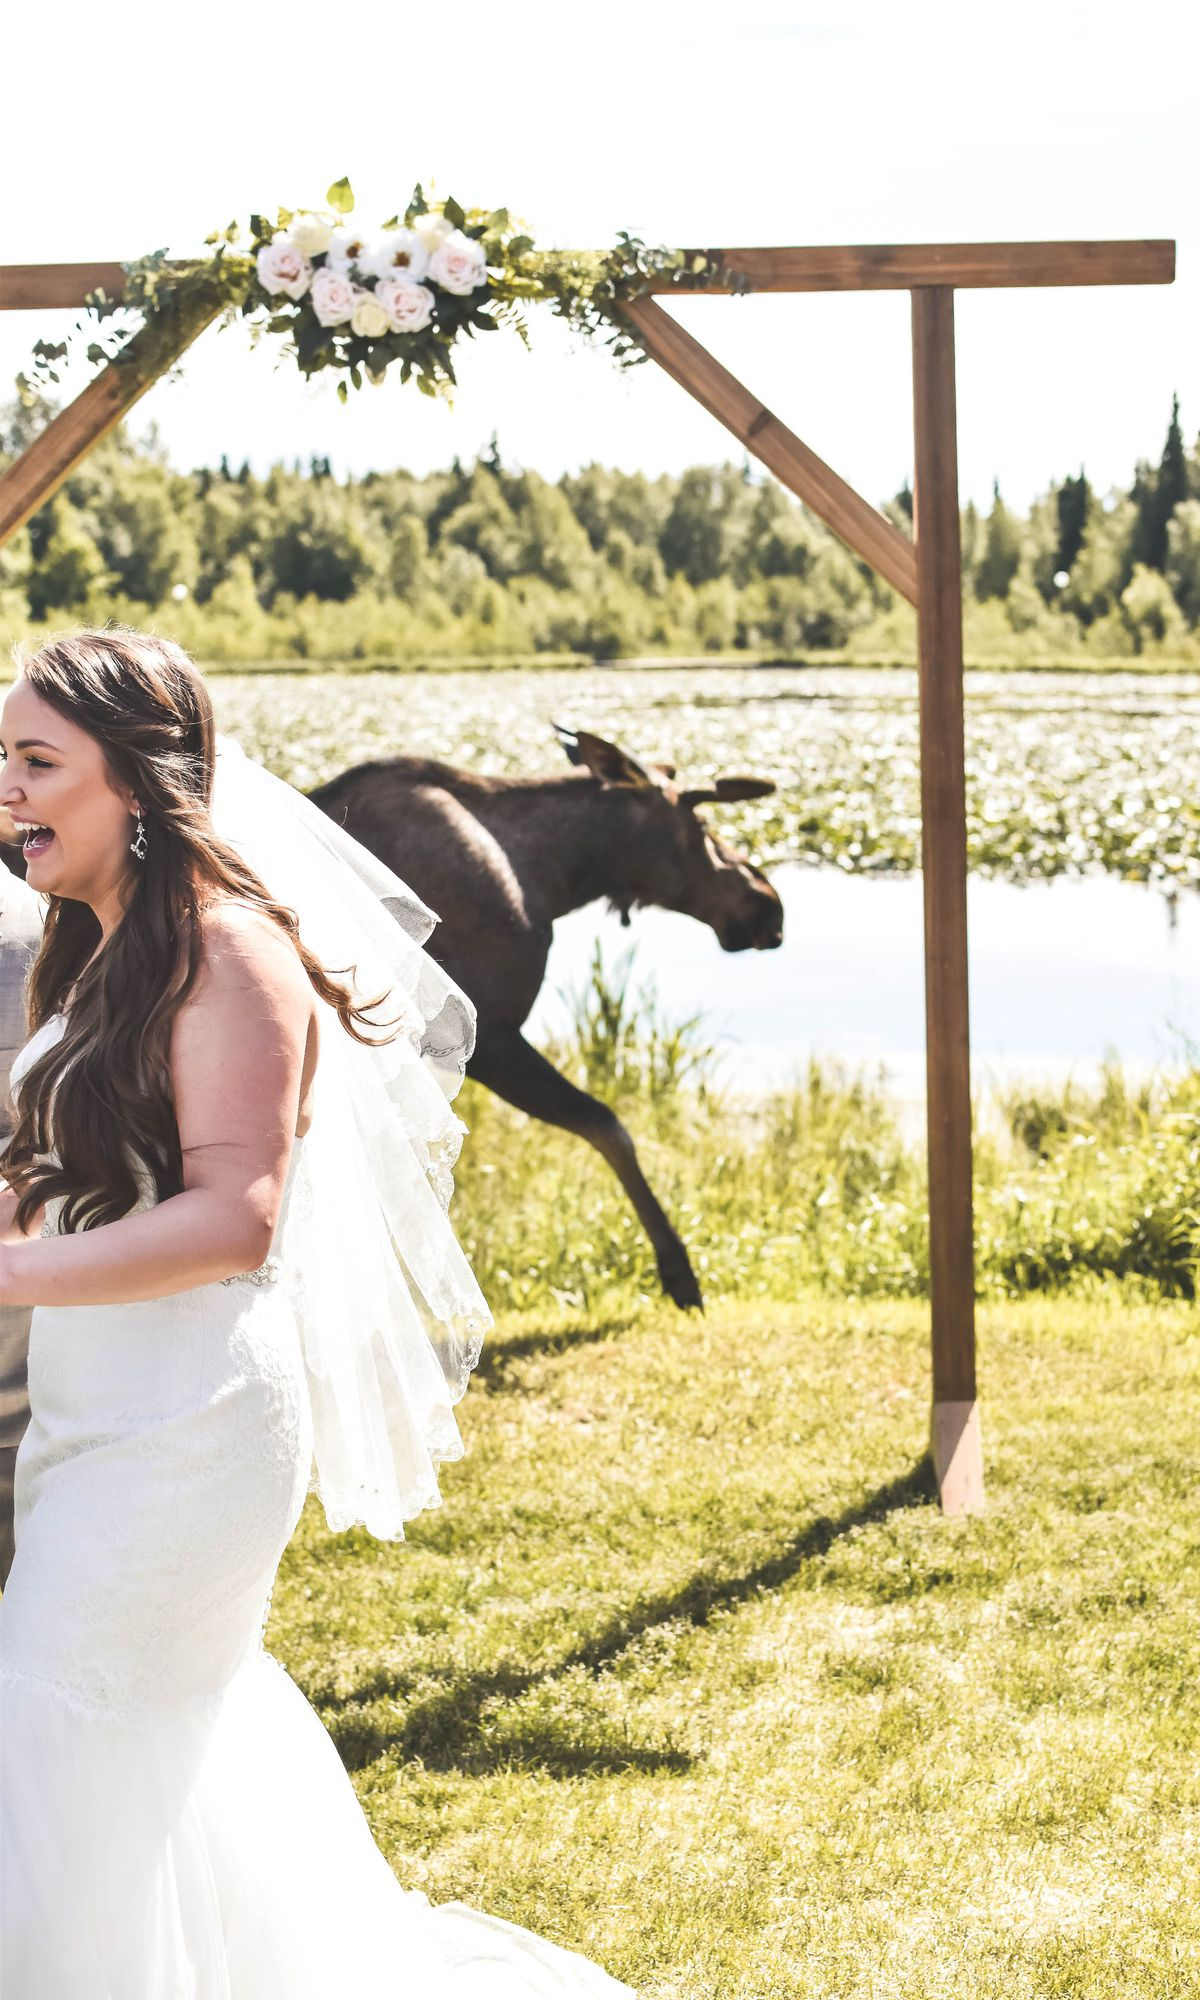 Shanalyn and Alan Cuellar were in the middle of their wedding ceremony at South Anchorage's Bayshore Clubhouse when a moose showed up. (Photo courtesy Bria Celest)